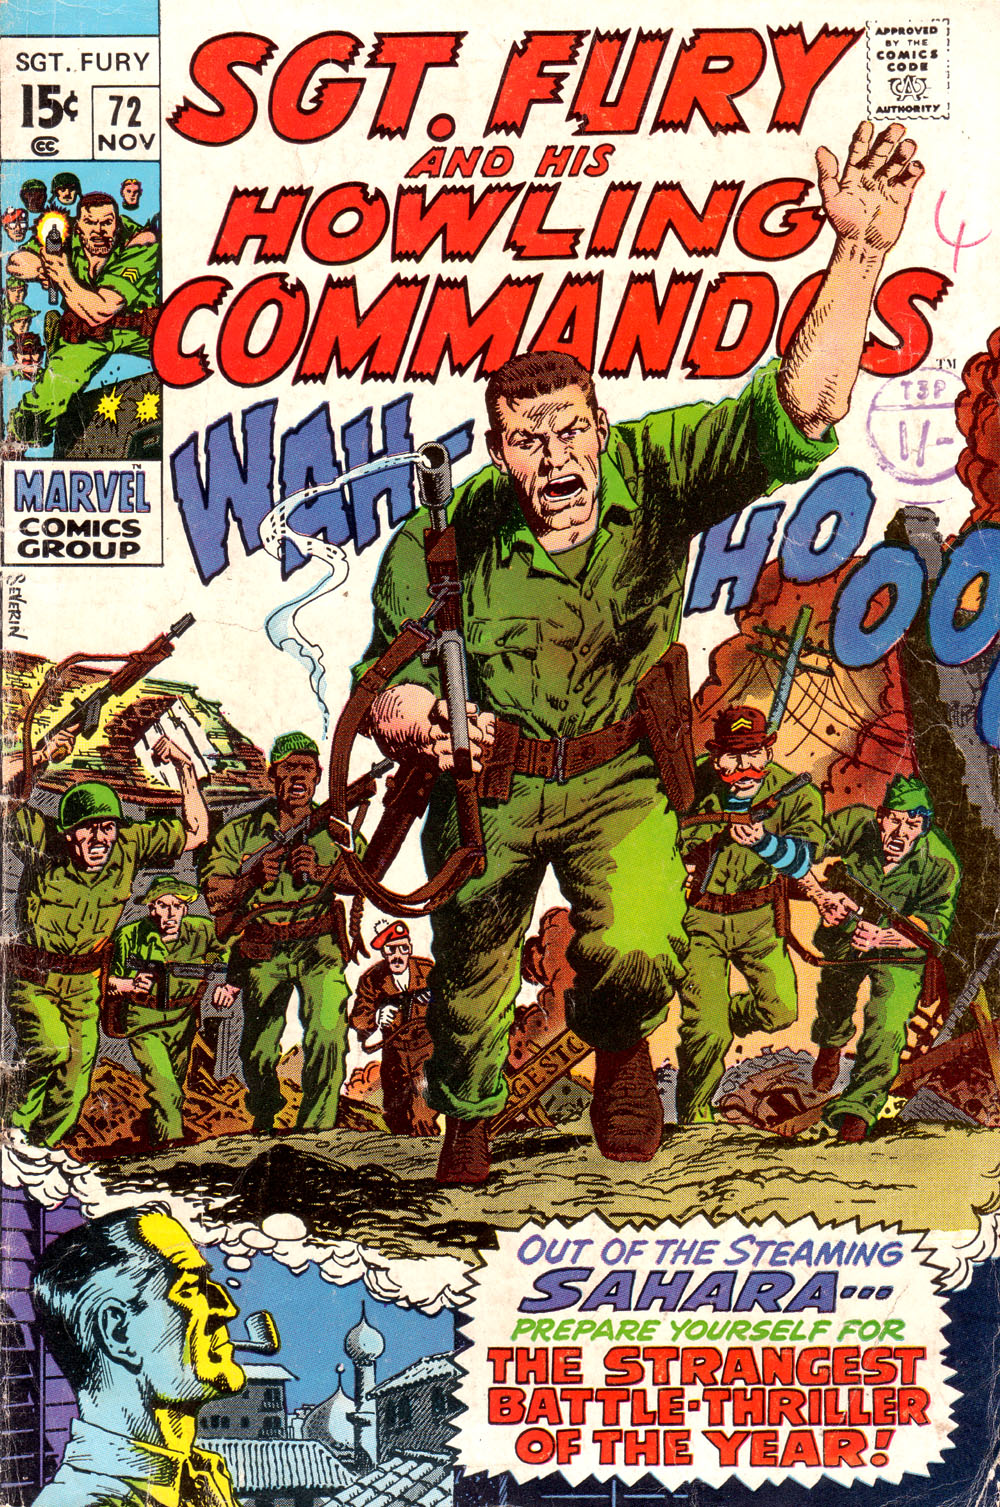 Read online Sgt. Fury comic -  Issue #72 - 1